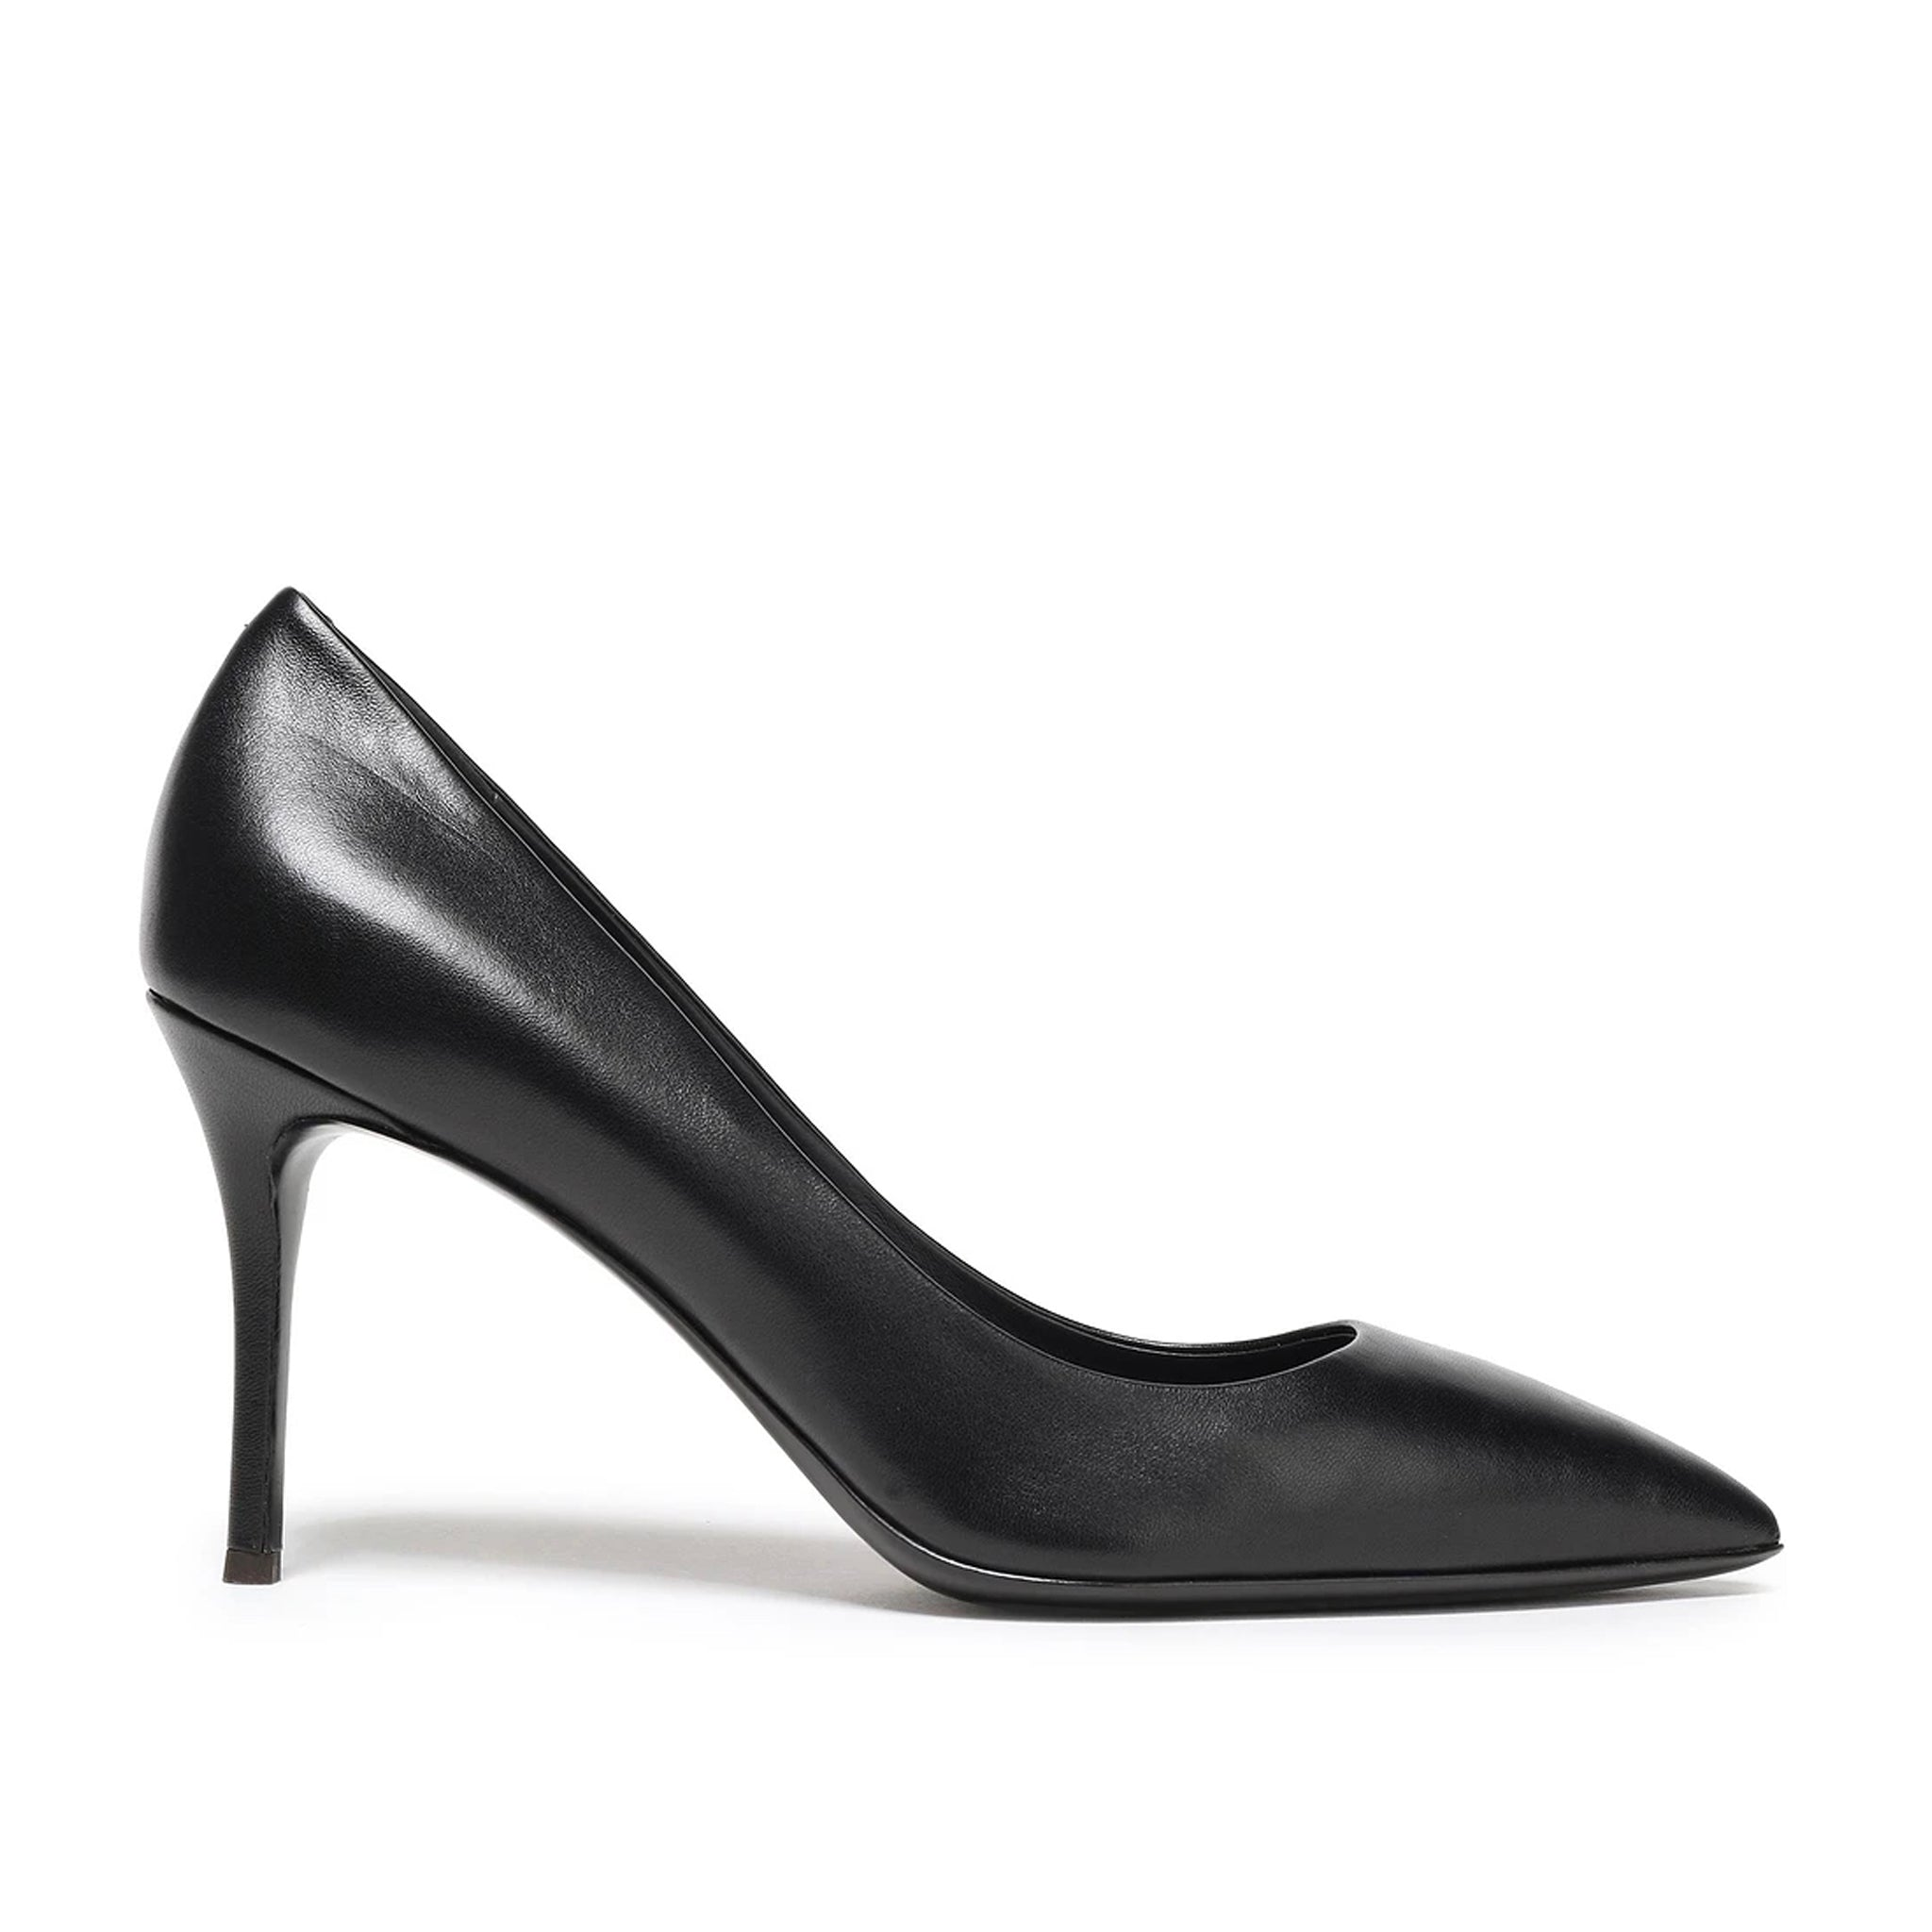 Giuseppe Zanotti Design Leather Pumps